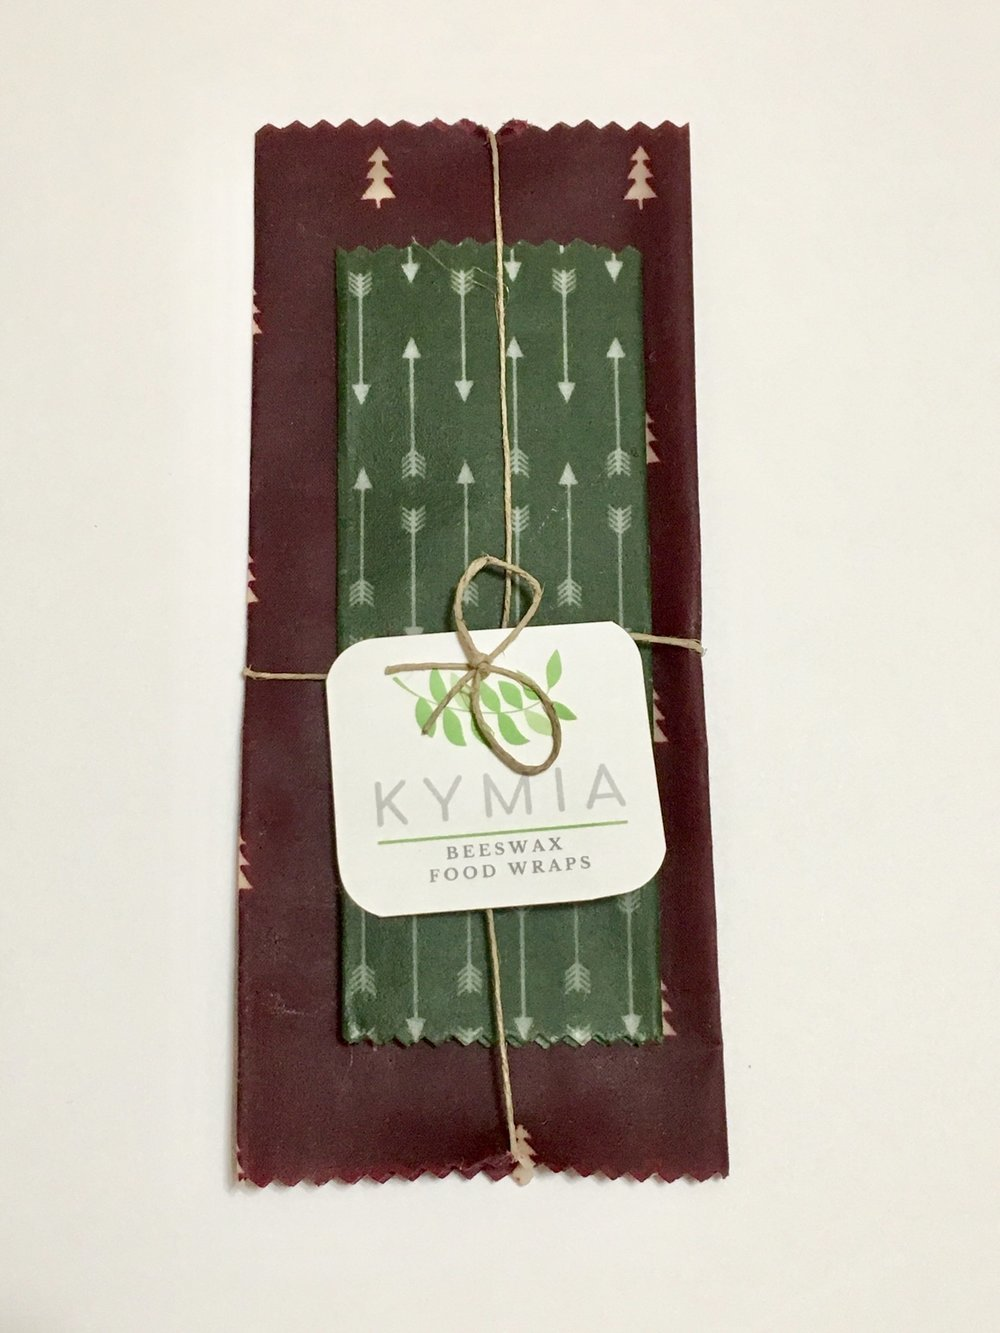 Kymia Beeswax Food Wraps